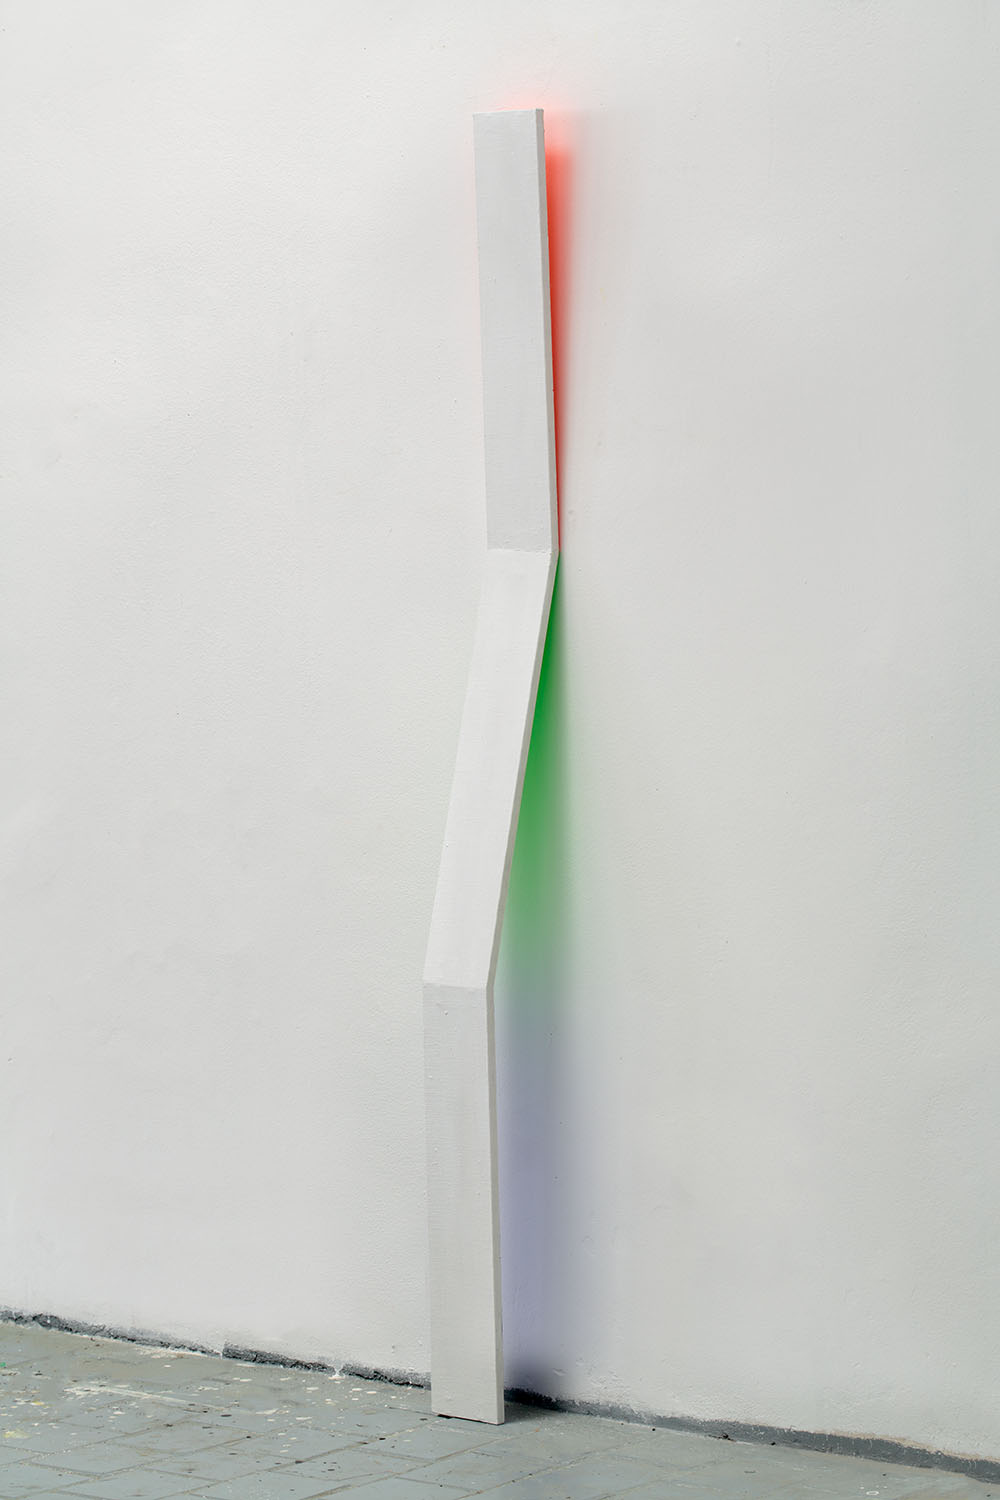 RGB3D fields no. 6 from DATA series / 180 x 12 x 15 cm / mixed media, canvas / 2015